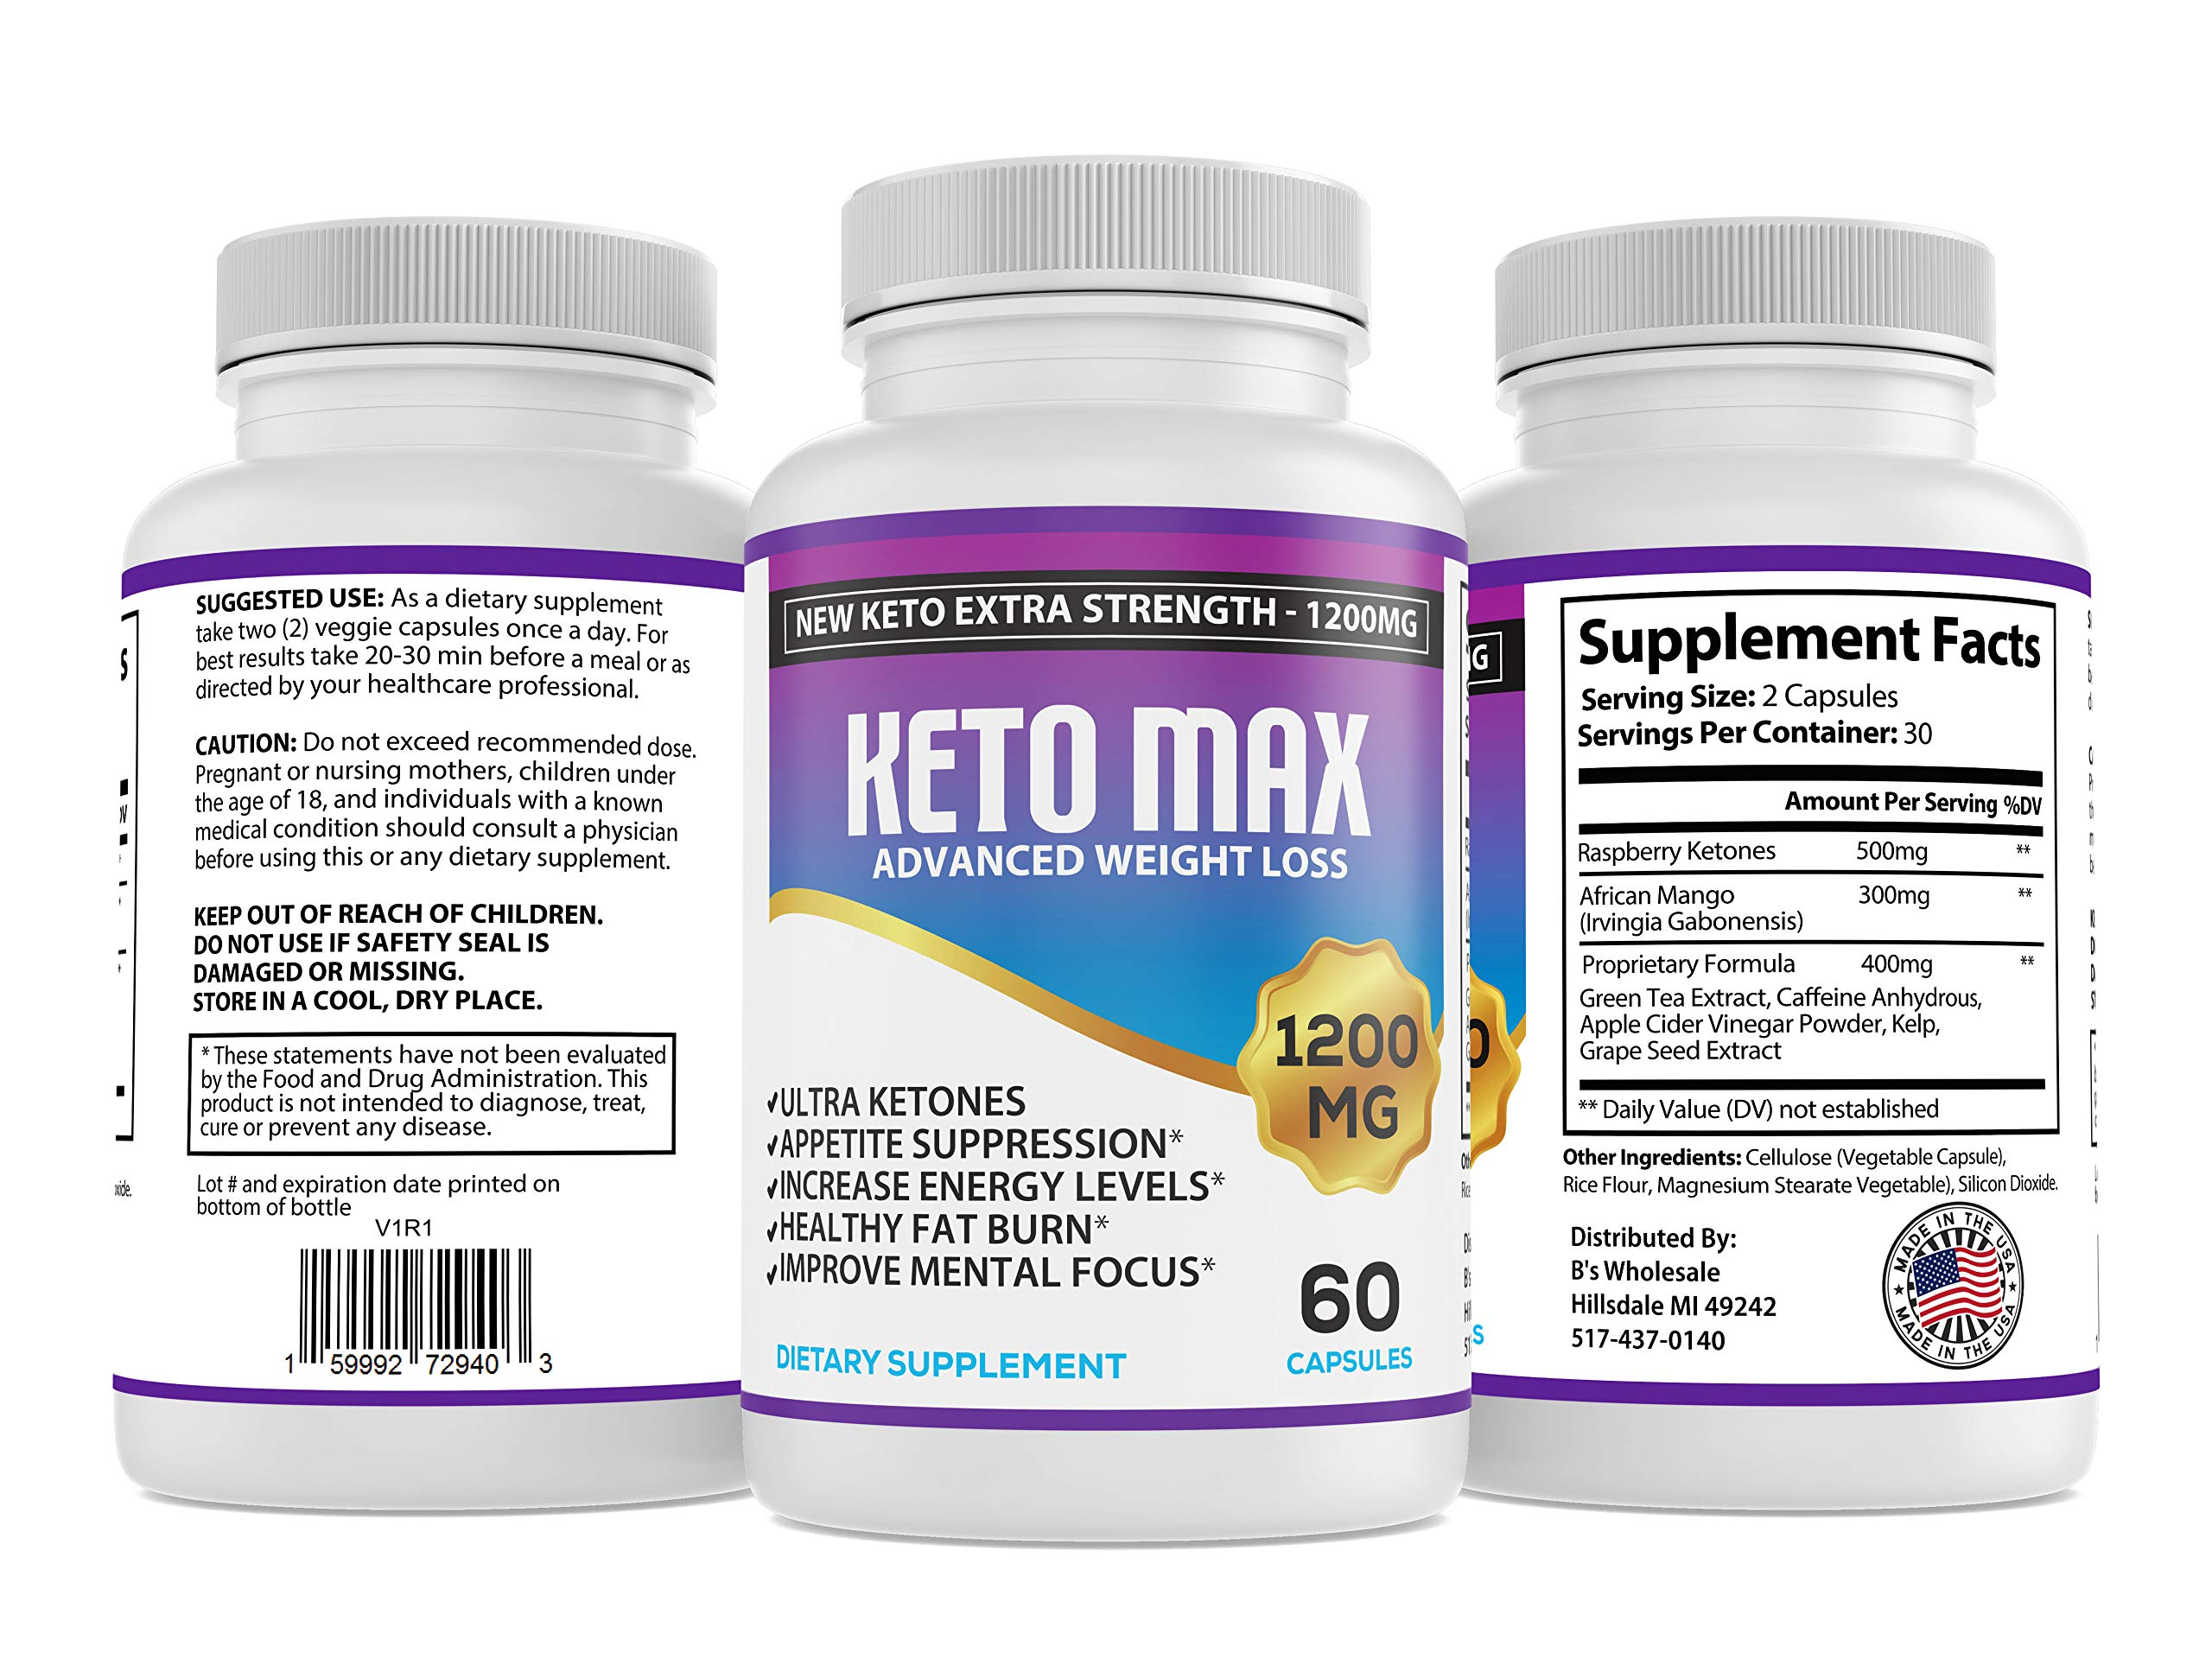 Keto Diet Pills - (1200mg 90 Day Supply) Weight Loss Fat Burner for Women & Men, Perfect Exogenous Ketones Supplement Burners by Keto Extra Strength 1200 (Image #4)